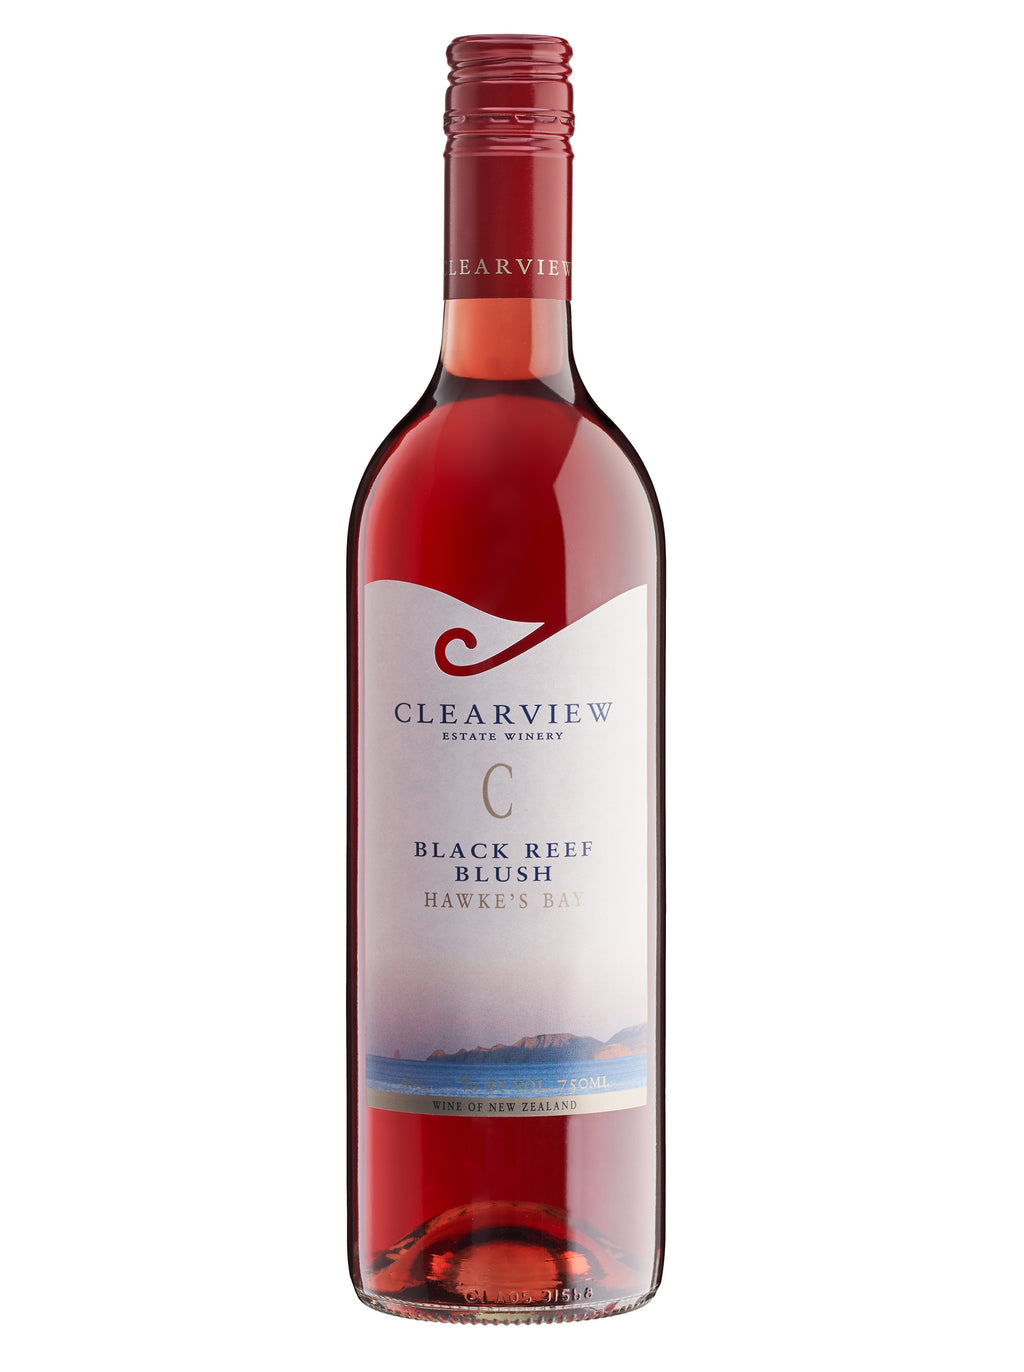 Clearview Estate Winery, Black Reef Blush, Rose Wine, Hawke's Bay Wine. New Zealand Wine, New Zealand Winery, New Zealand Wine Events, Auckland Wine Events, New Zealand Wine Store, Online Wine Store, Winetopia